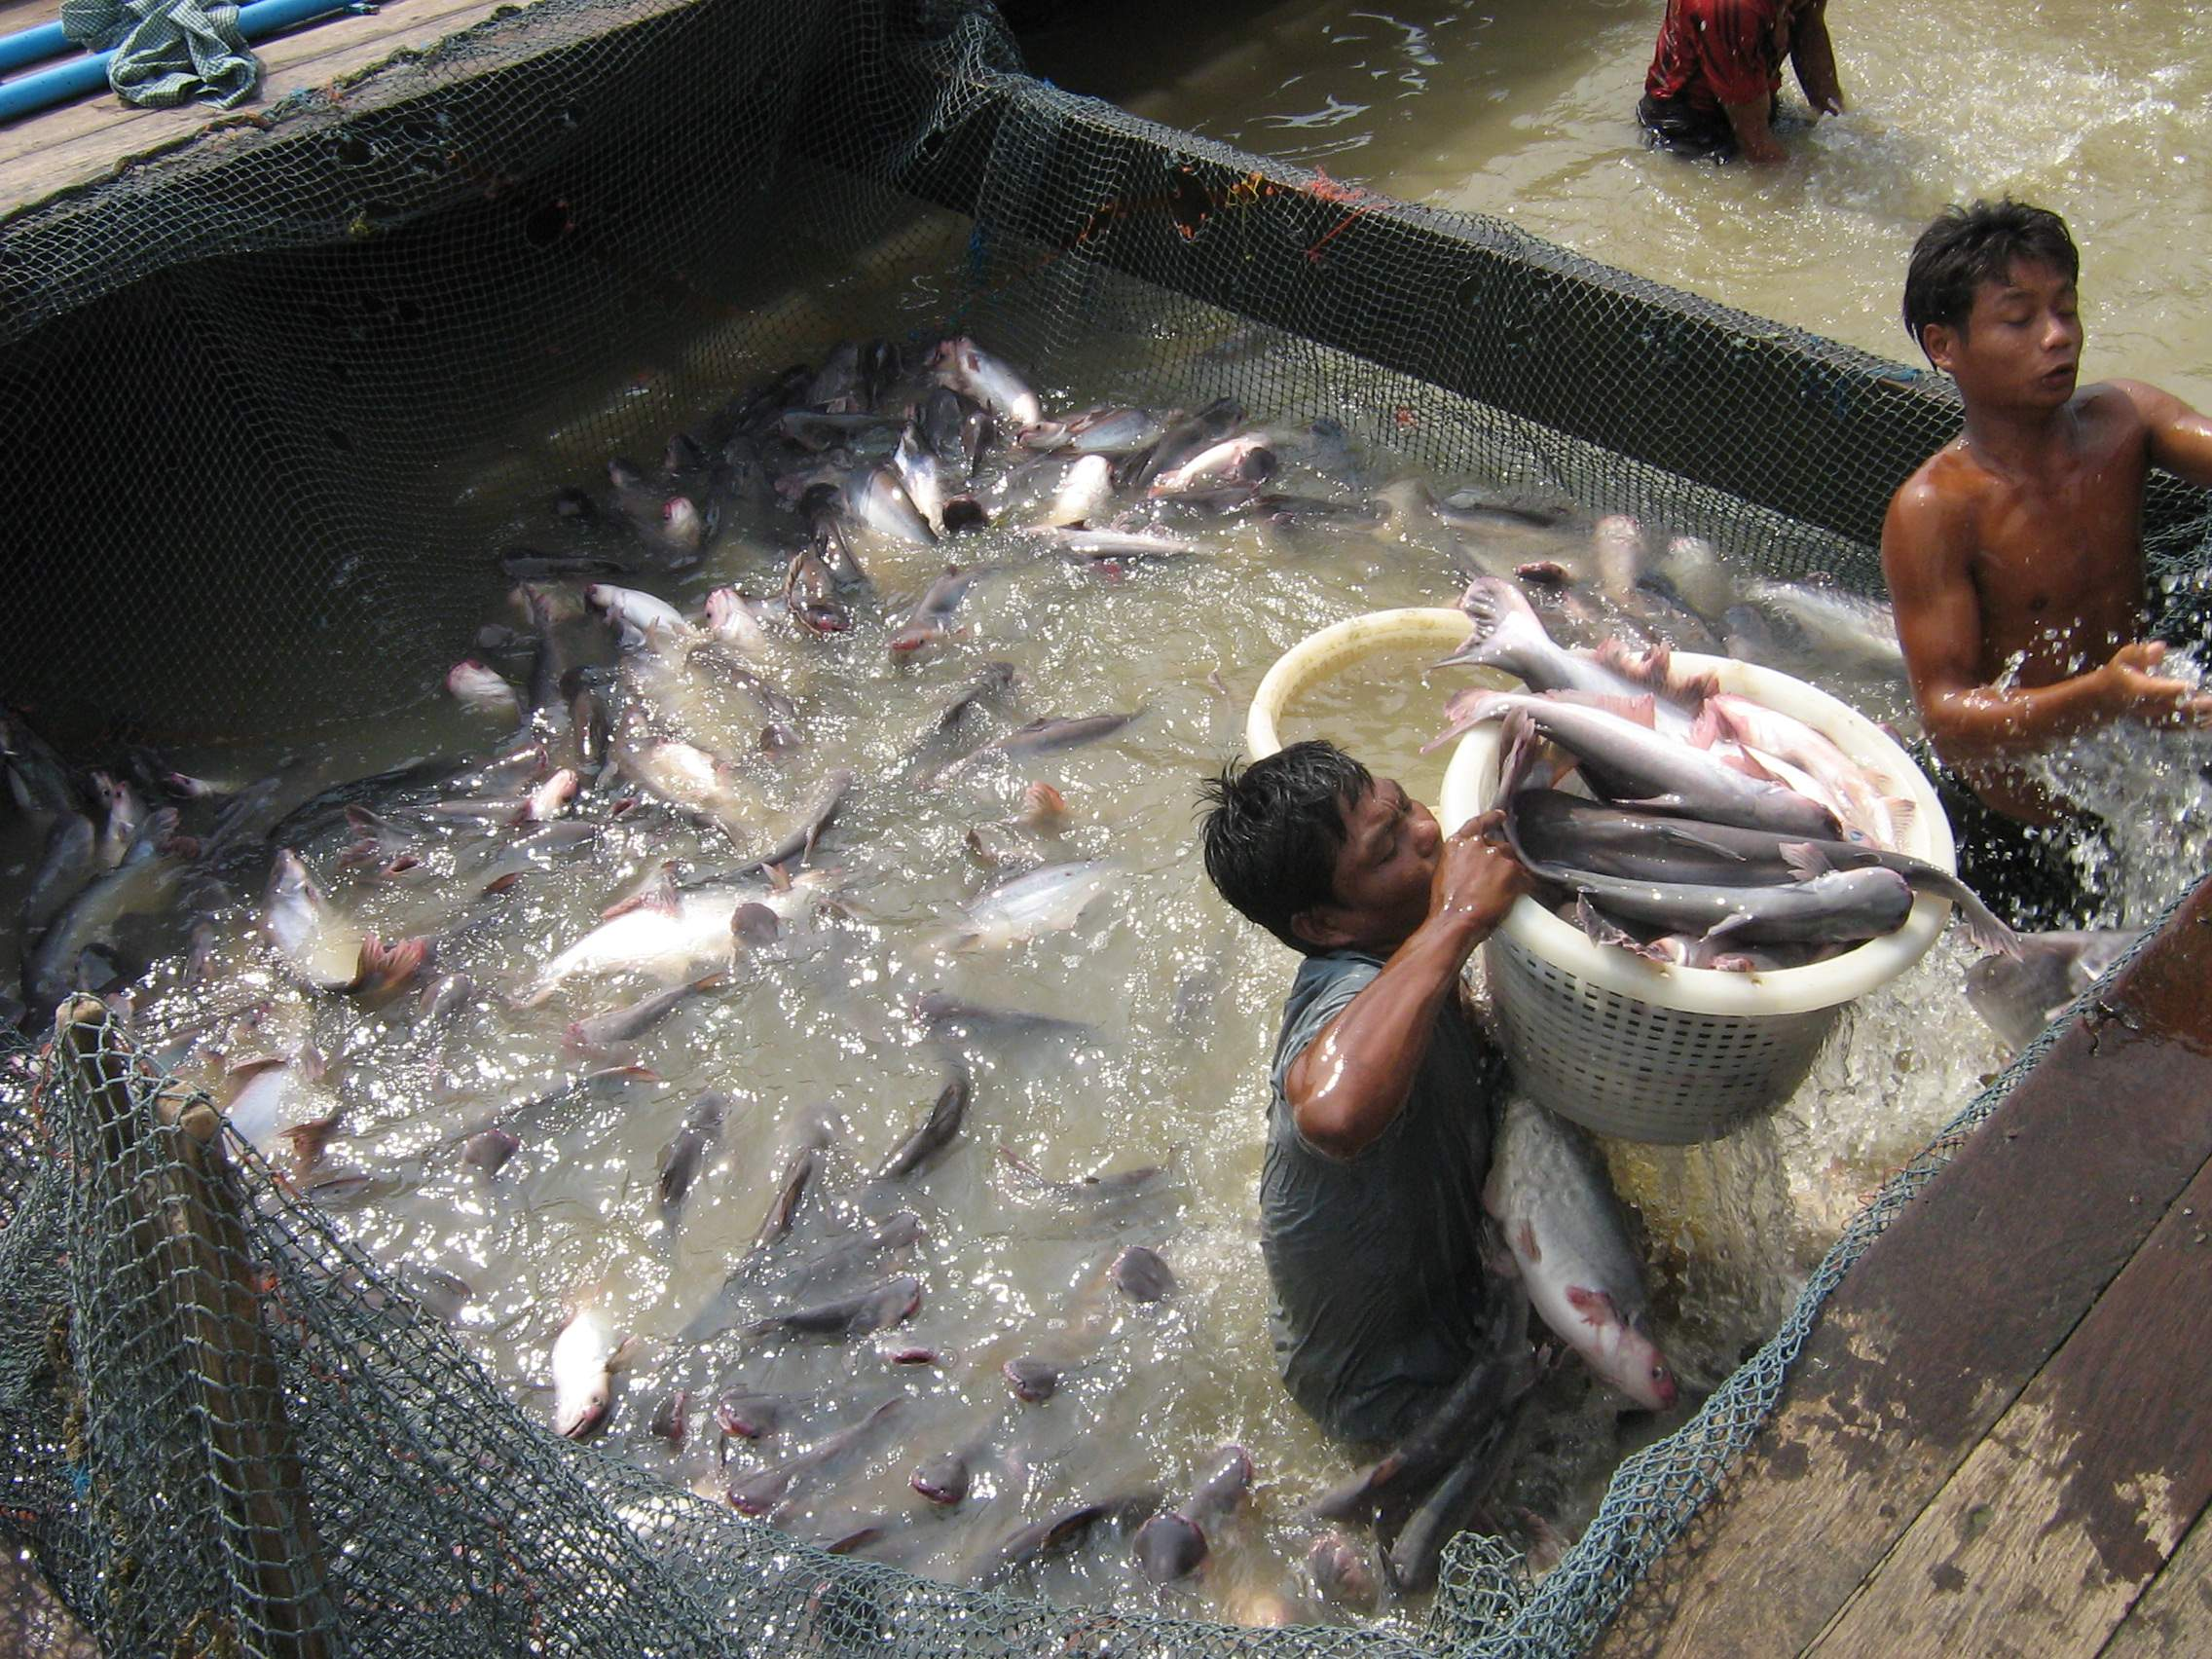 Workers Handle Farmed Fish